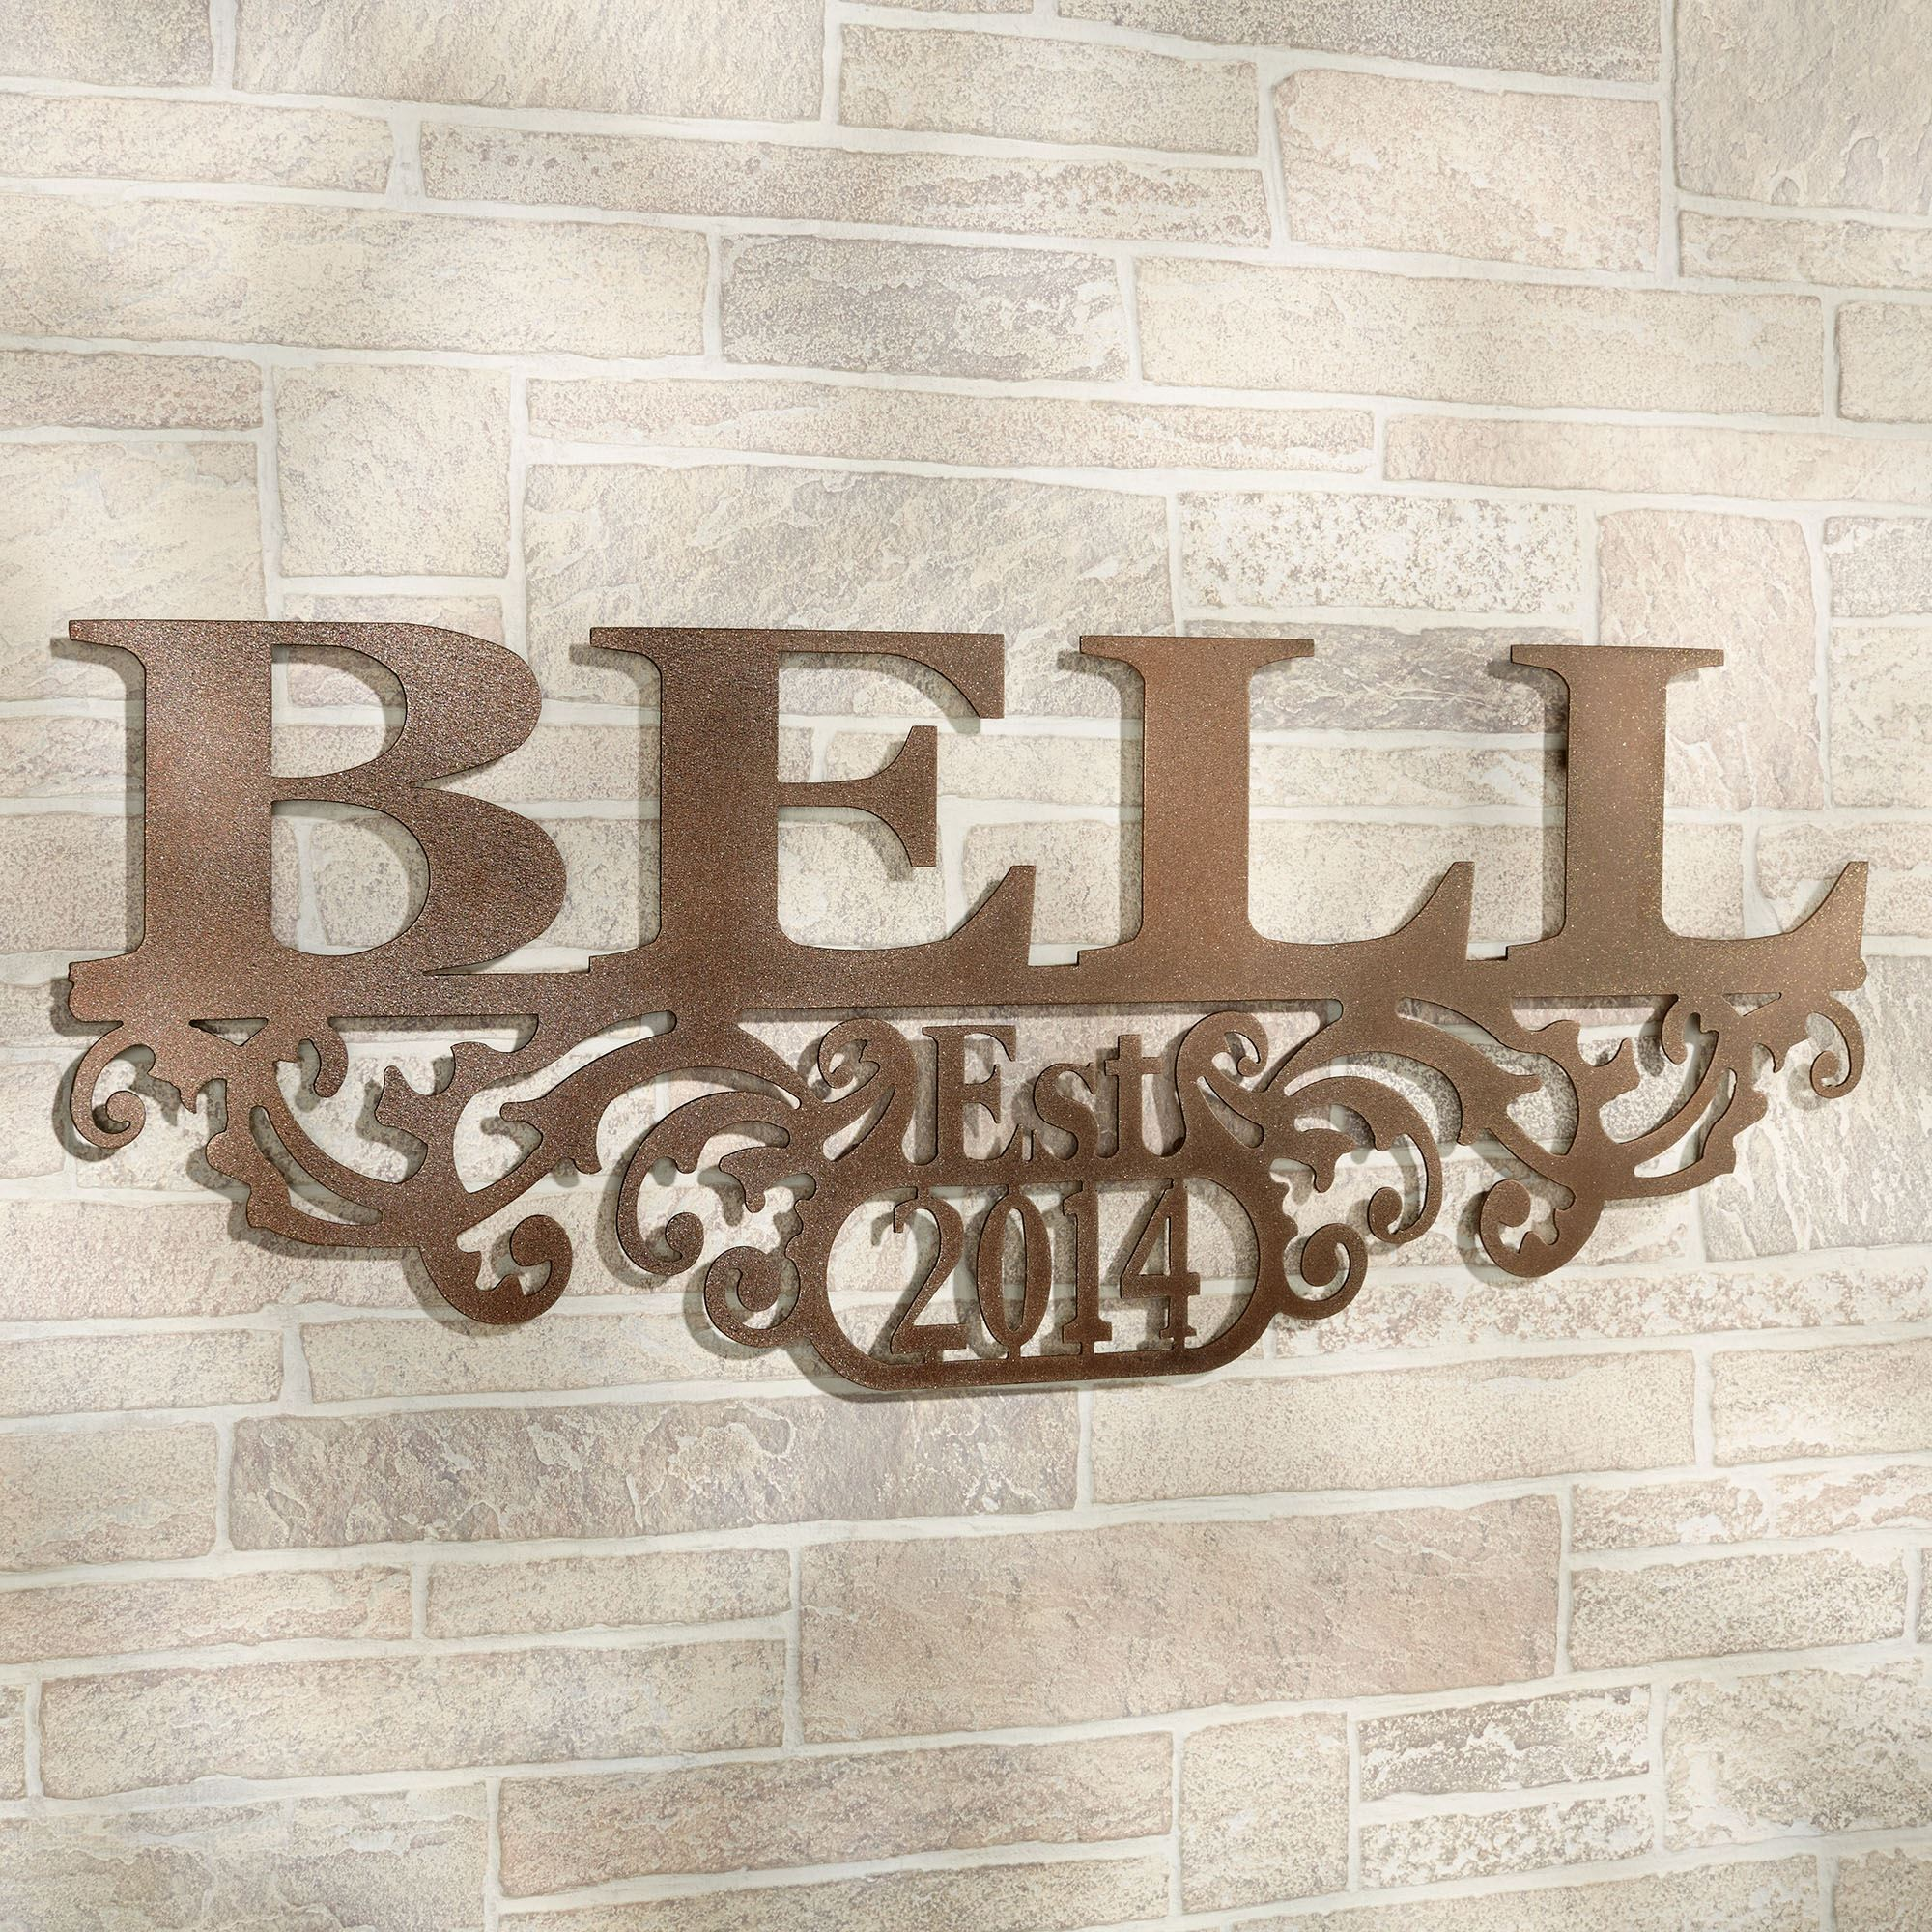 Good Kinship Name And Year Wall Art Sign Brown